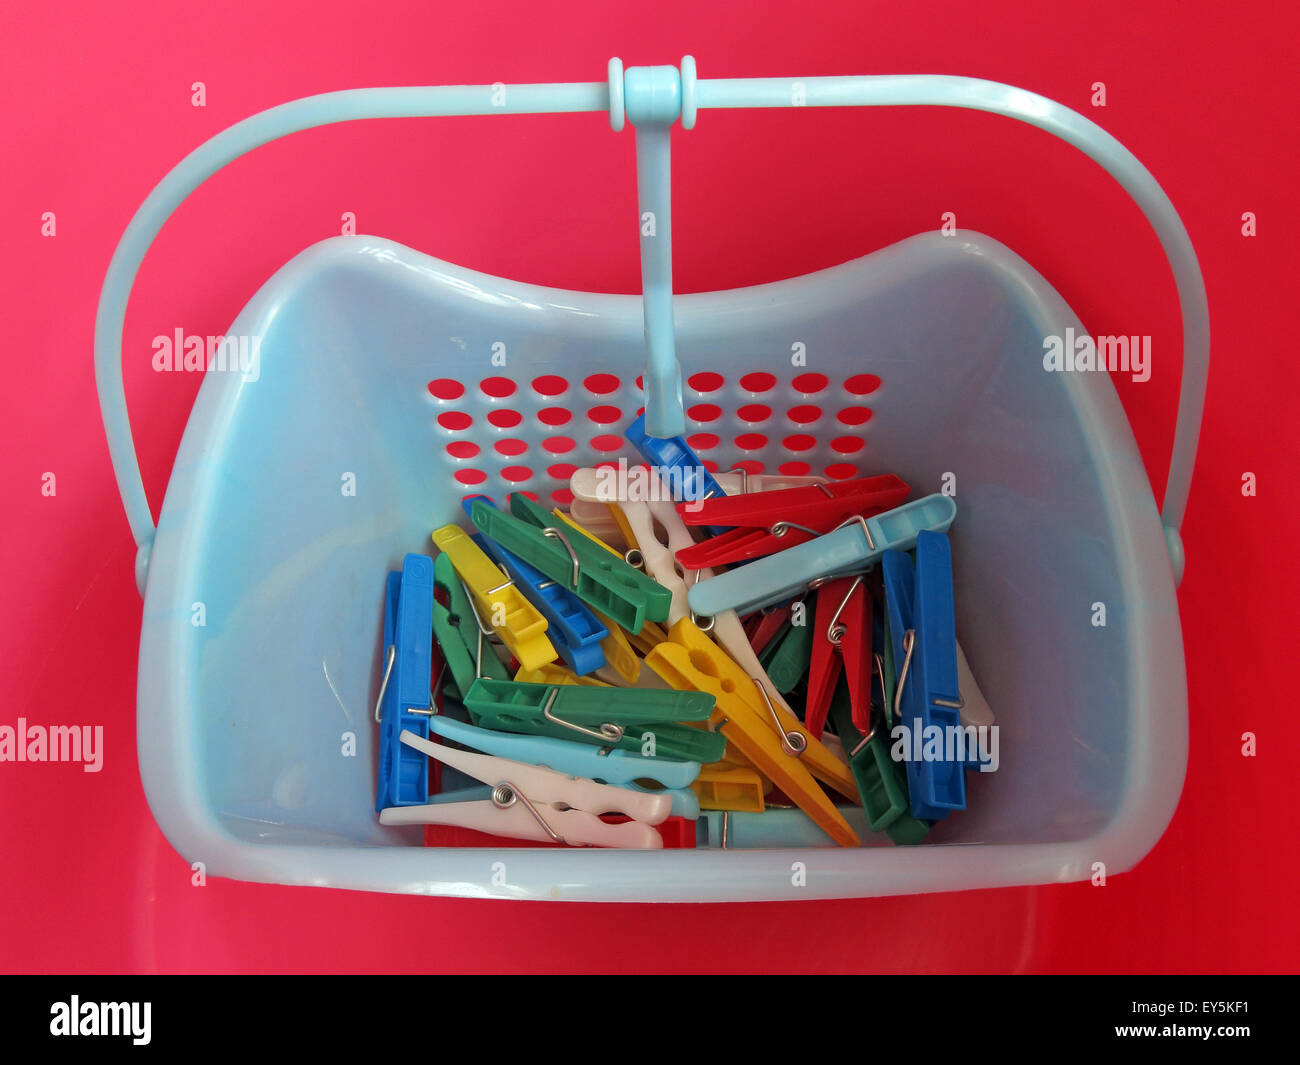 Brighter,Wash,washer,day,clothing,peg,washingline,in,blue,yellow,green,basket,with,handle,clip,clips,machine,dry,drying,dryer,white,GoTonySmith,Buy Pictures of,Buy Images Of